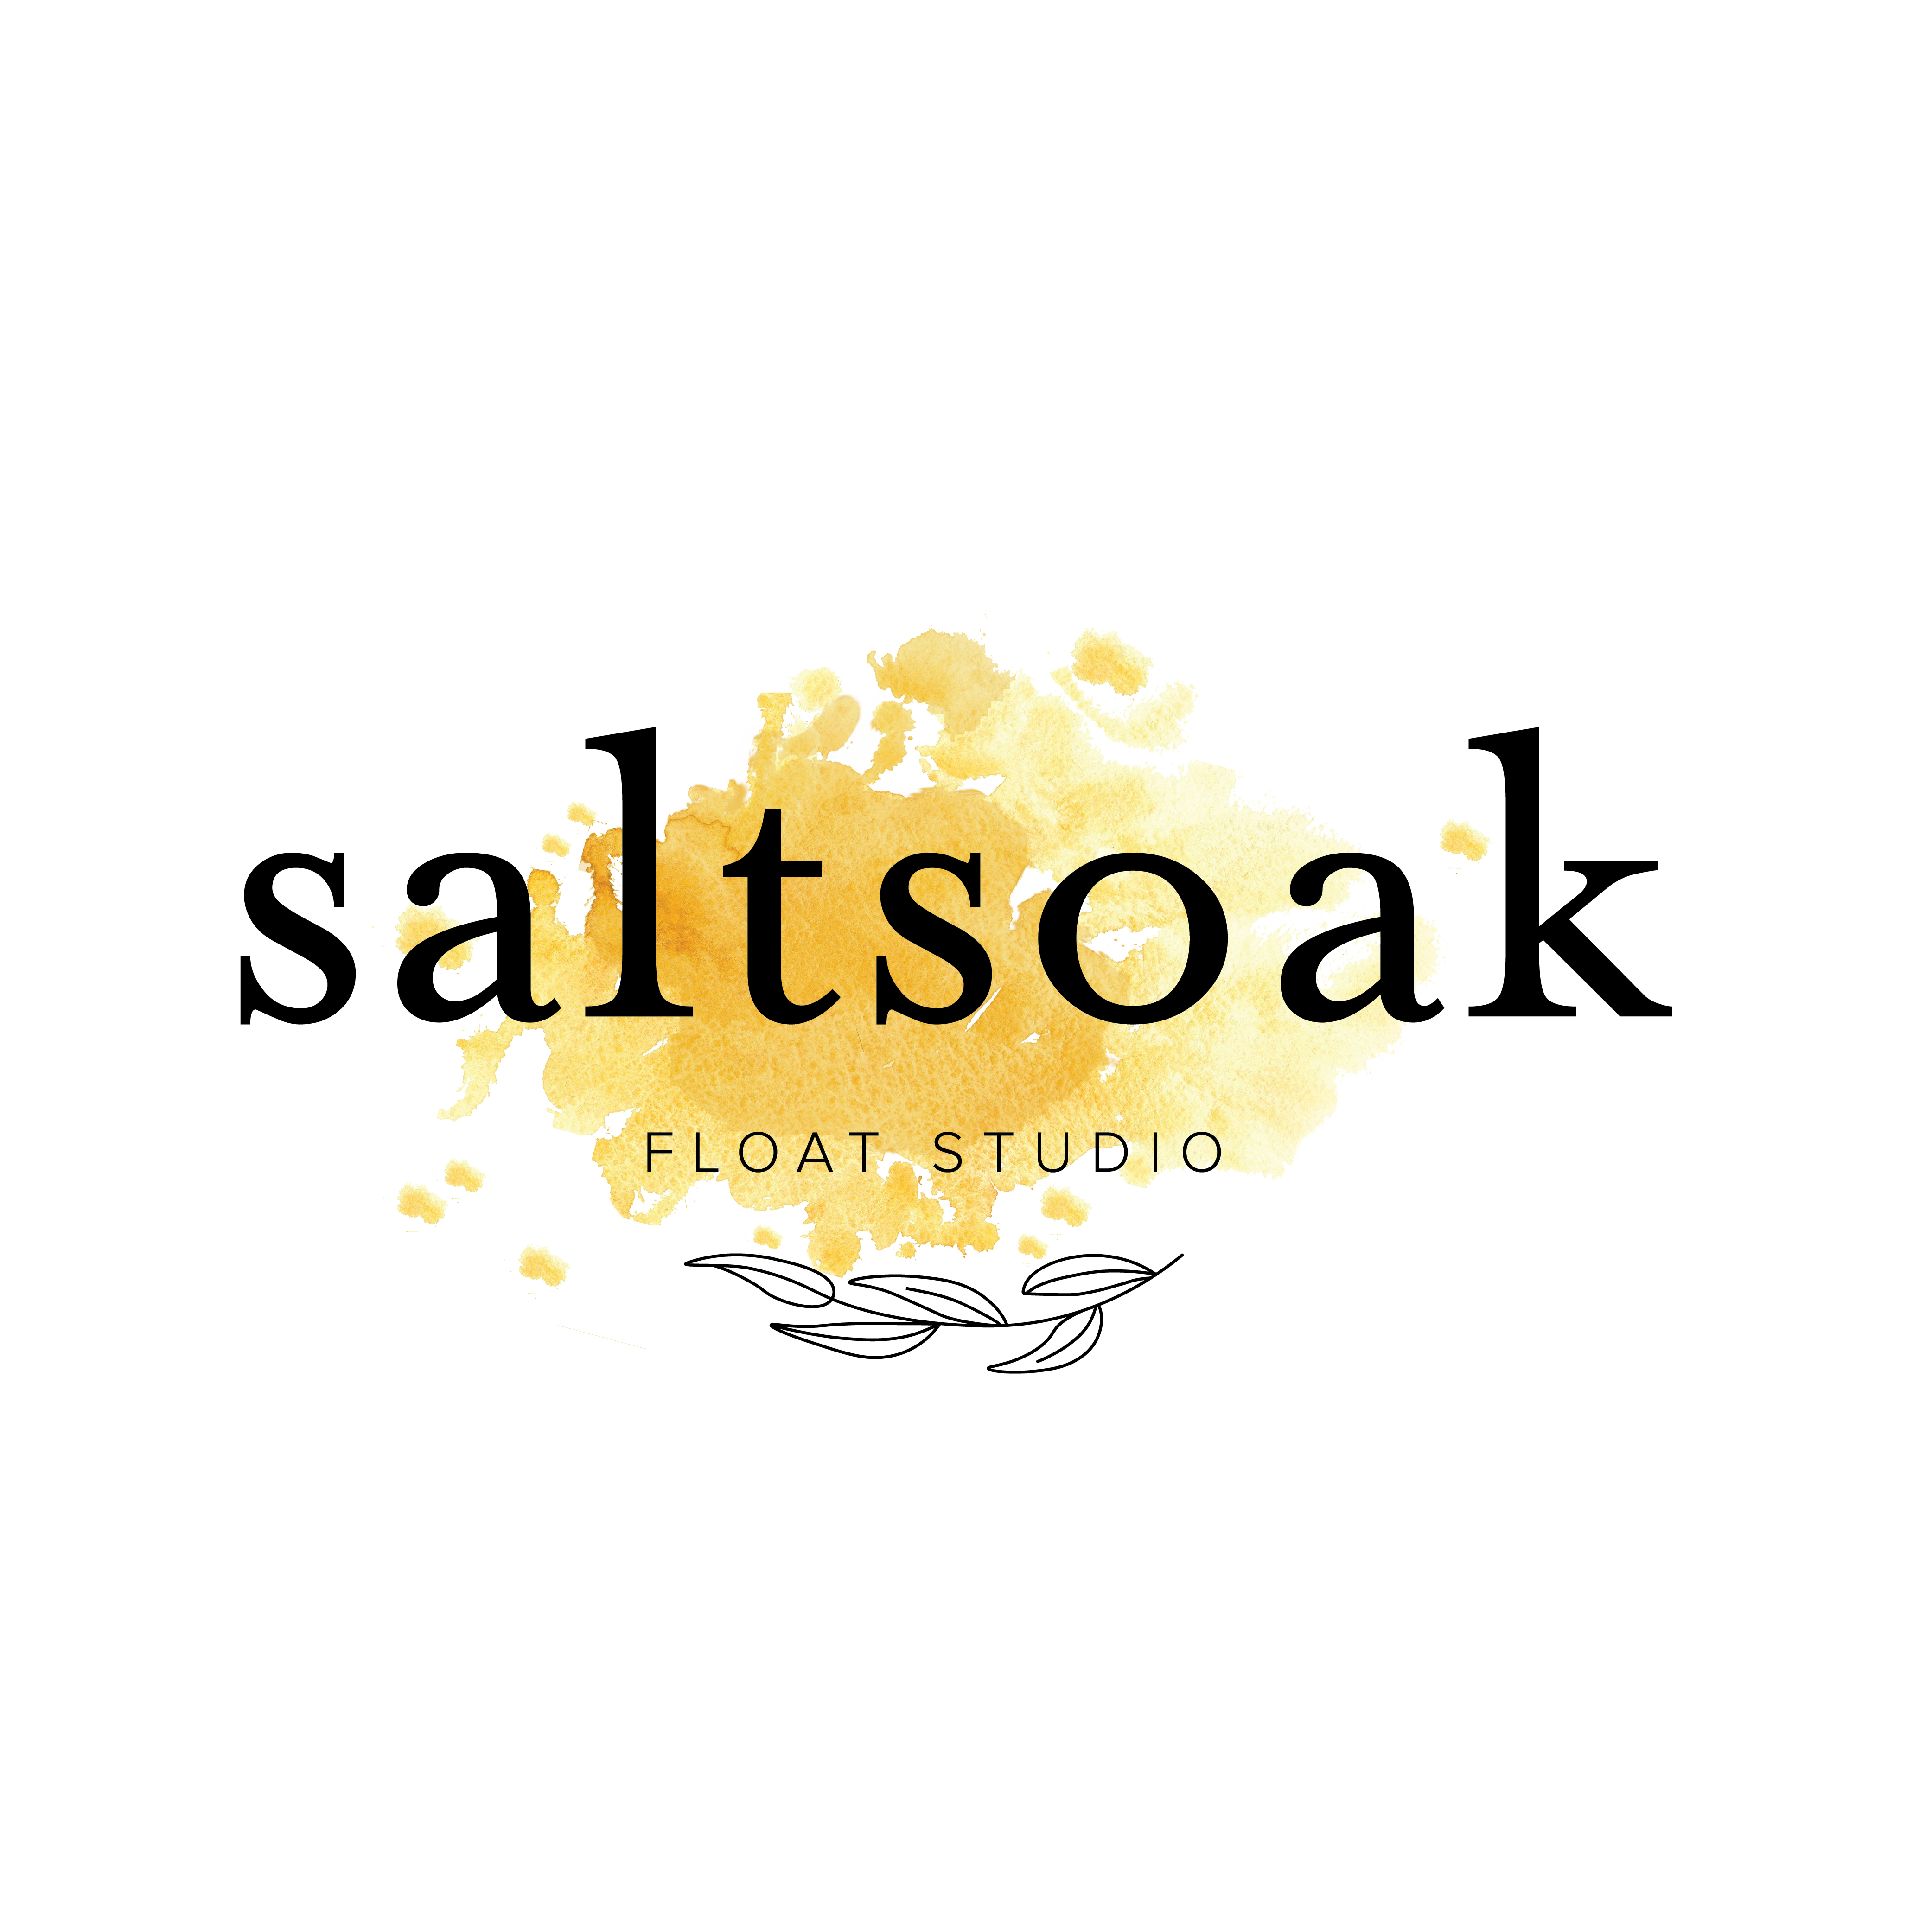 saltsoak Float Studio